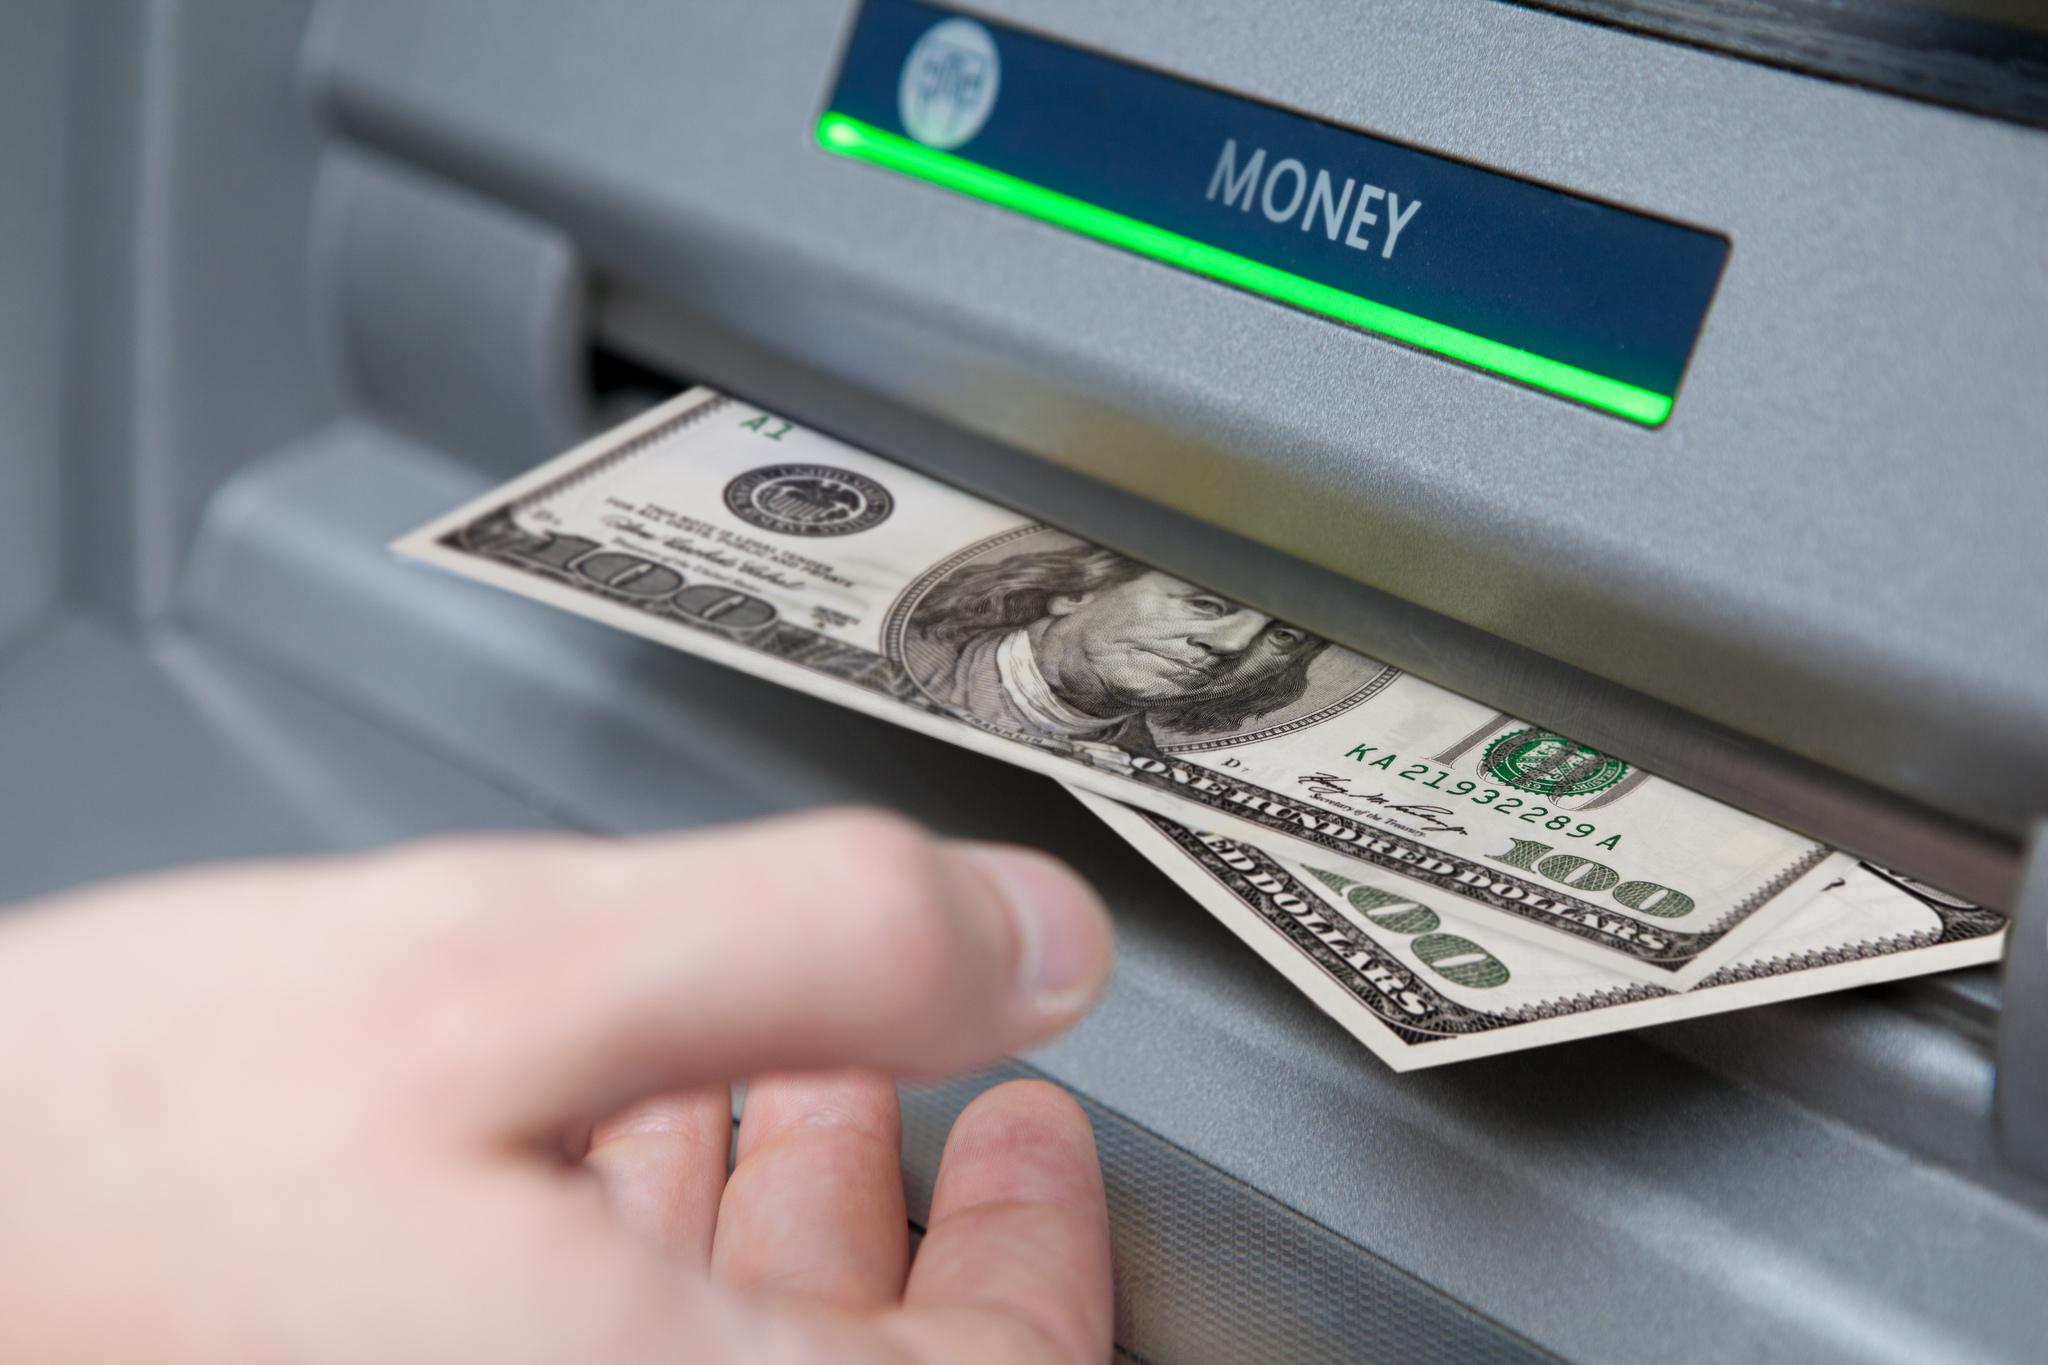 9 Unusual Ways to Make Money You May Not Know _ Checking Account ATM _ all created